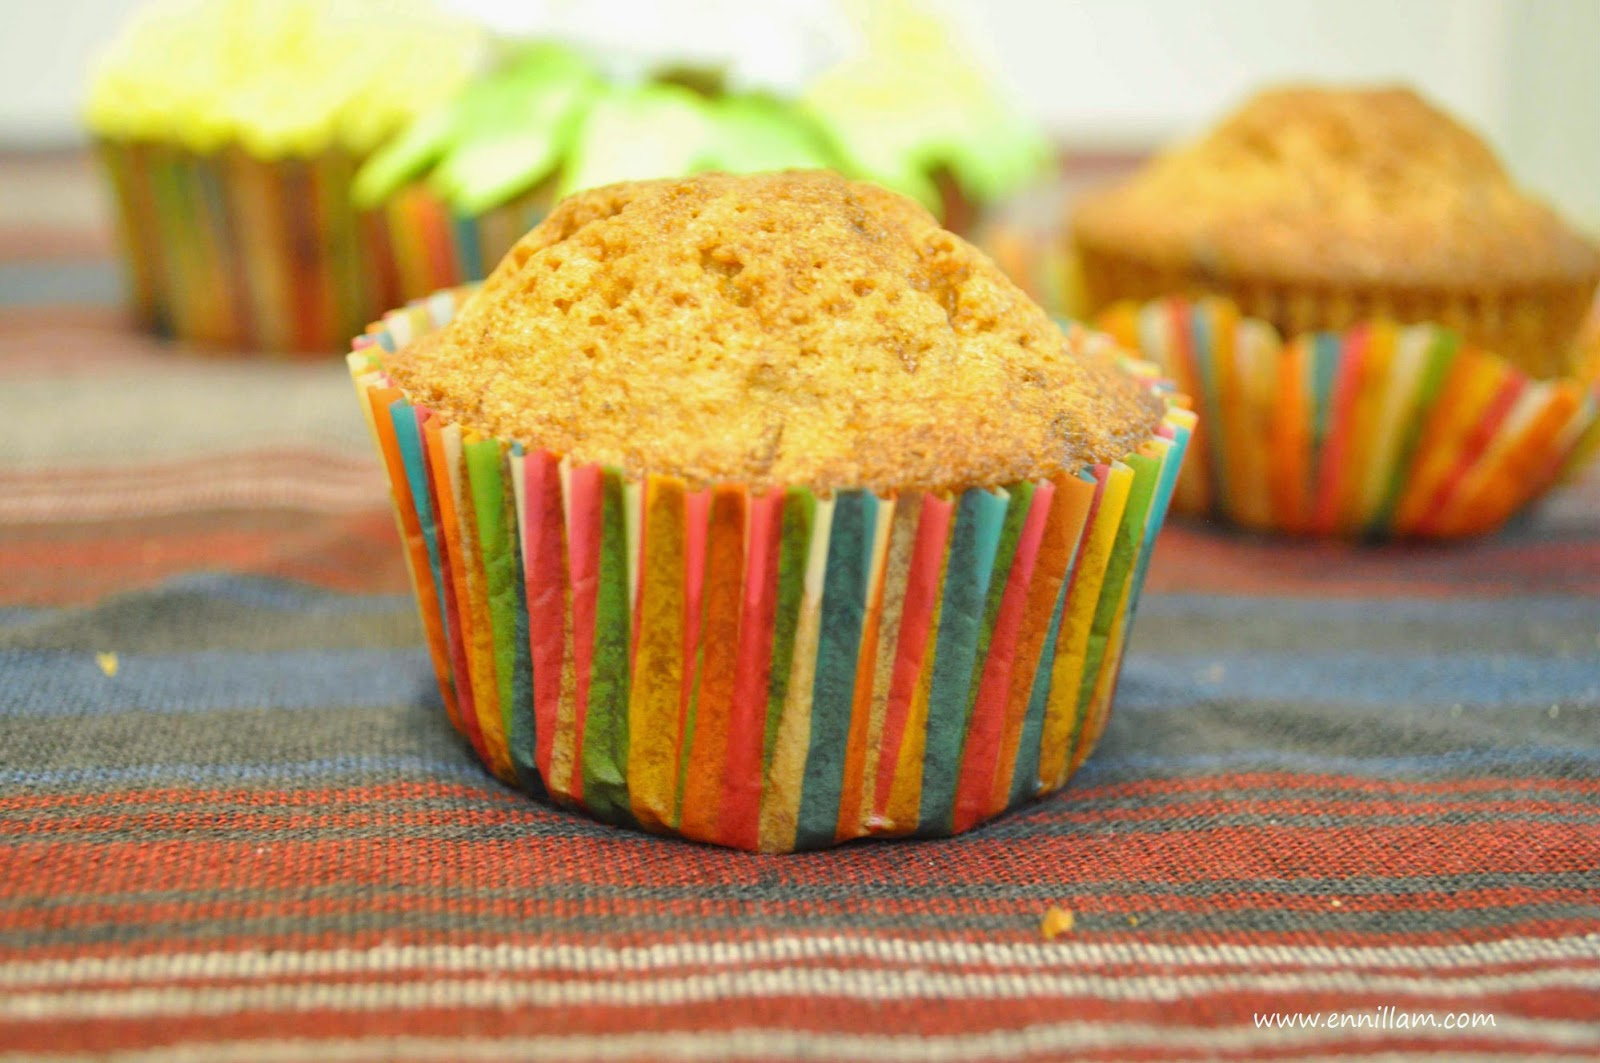 Carrot cupcake balas e kitchen i think most of us wont say no to cupcakes and when you make that at home it smells great and tastes extra delicious cake recipes from food network forumfinder Choice Image